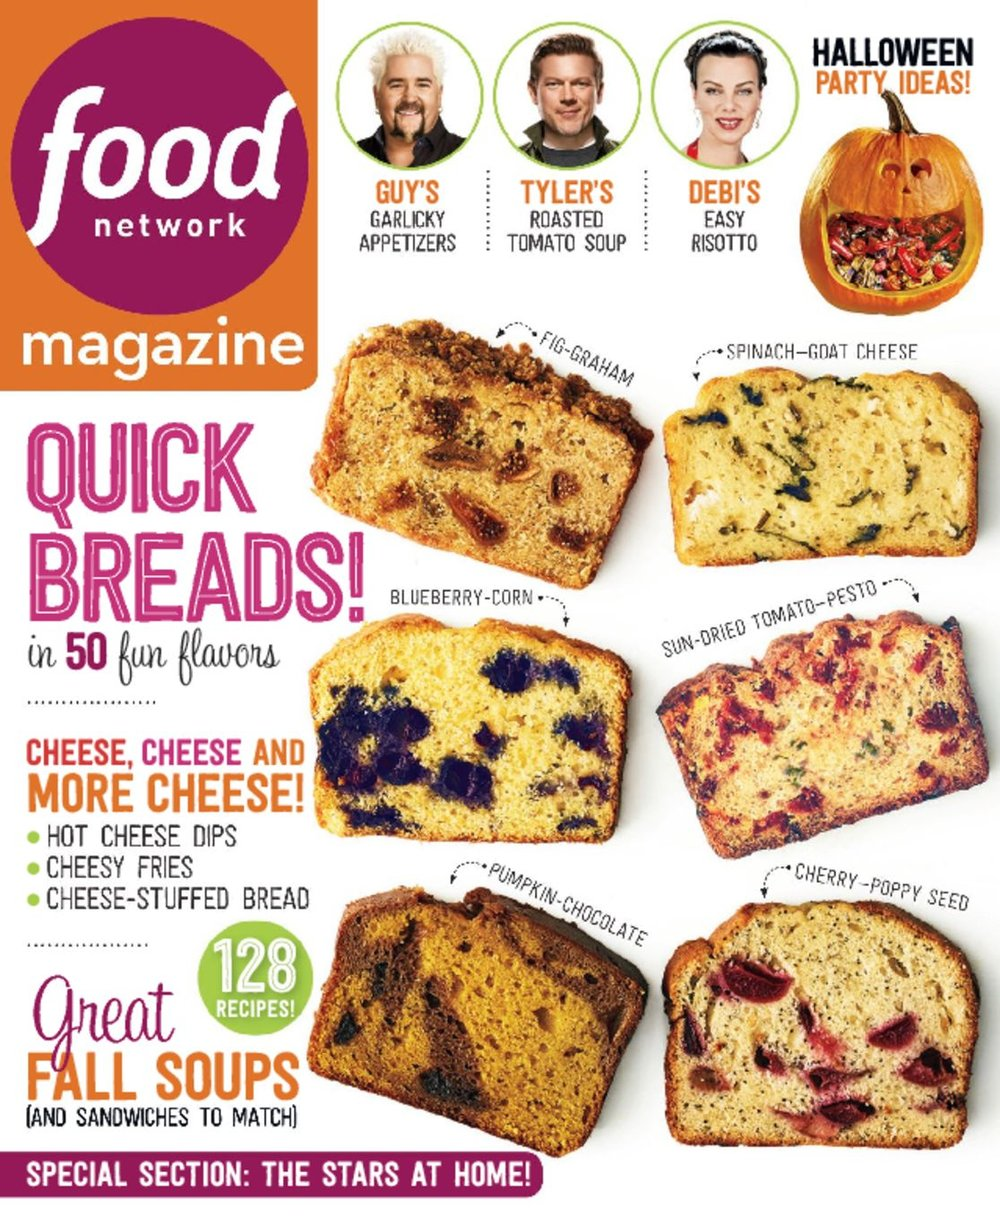 Food Network Magazine October 2014.jpg